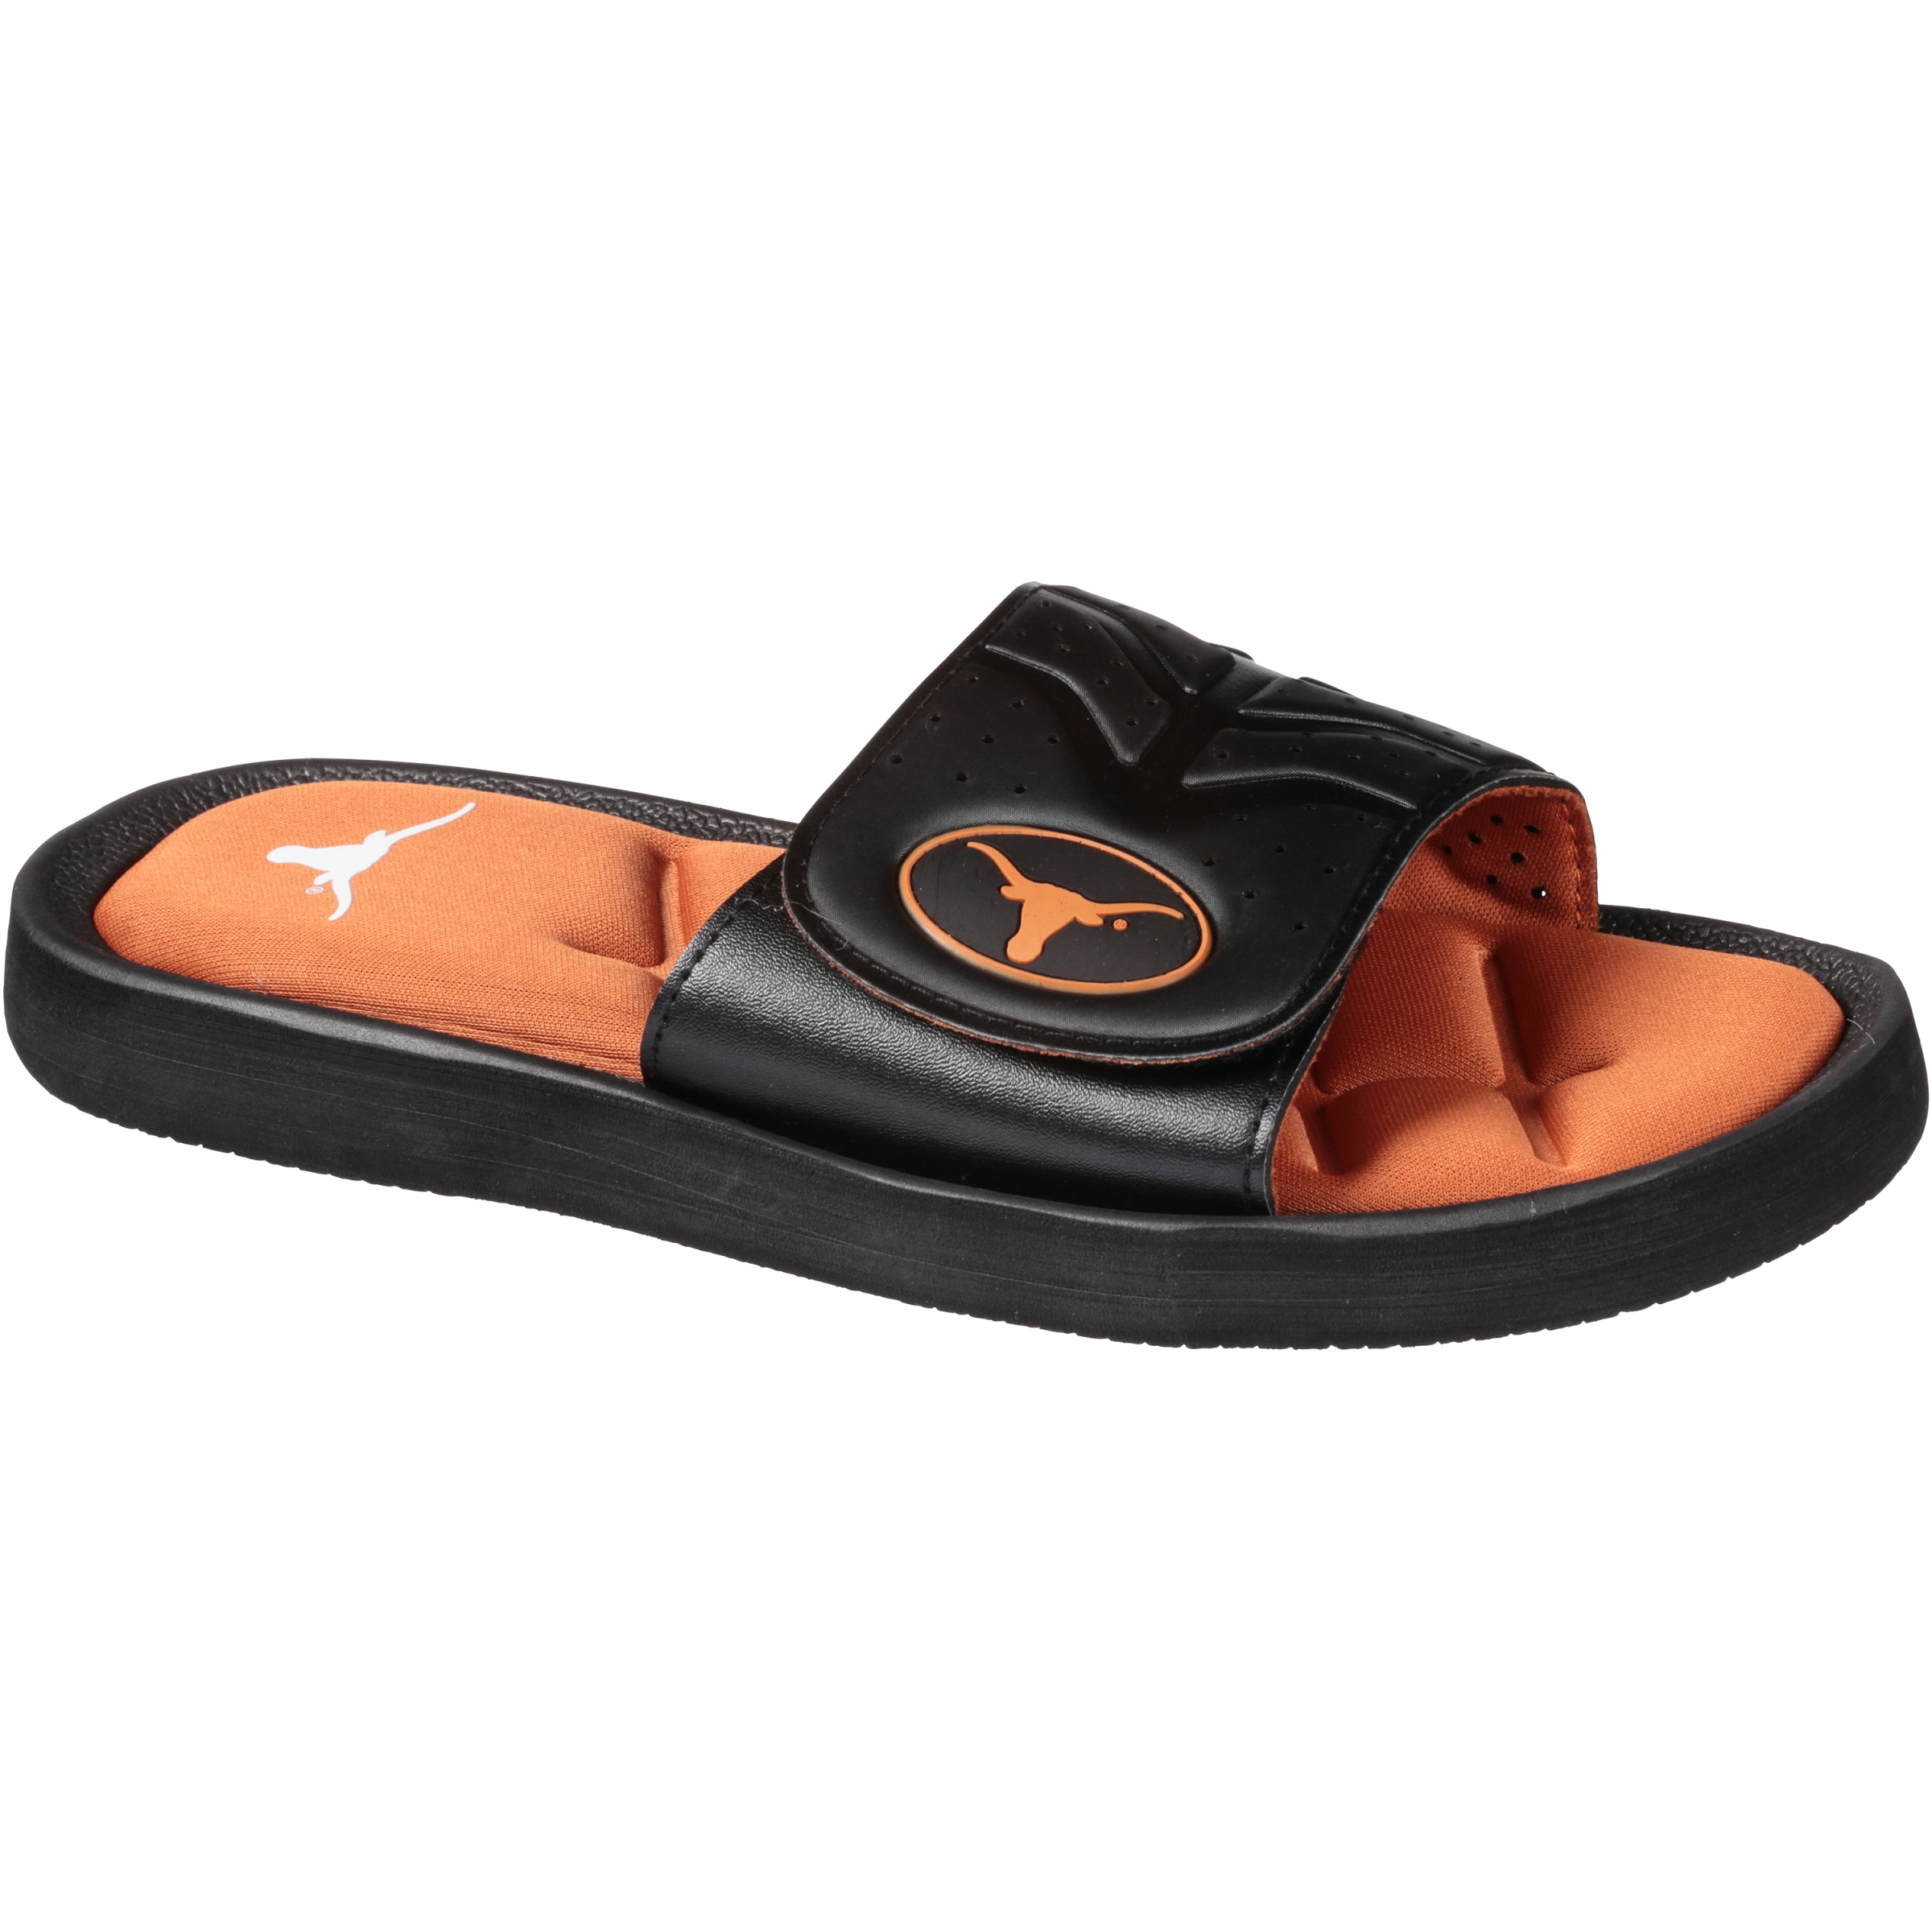 Colliegiate Men's Slide L (11-12) Footwear University of Texas Longhorns 1 pr